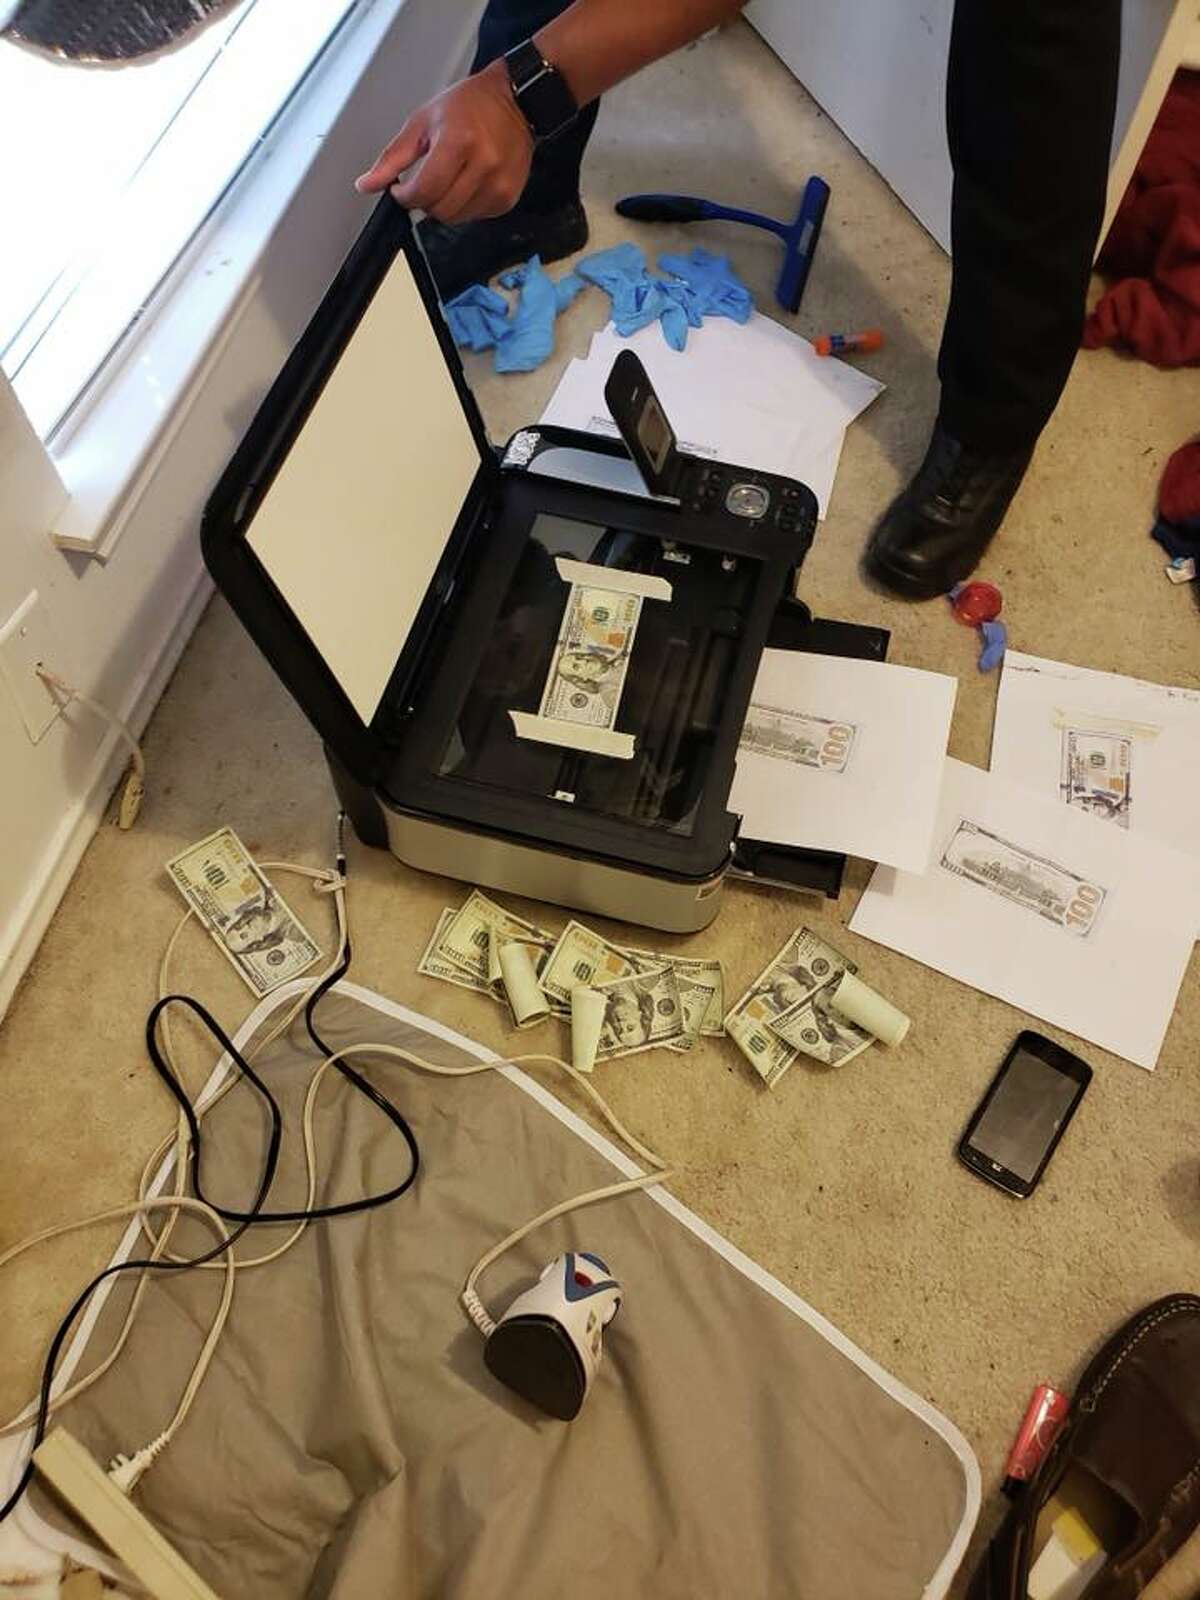 San Antonio police seized $1,000 in counterfeit cash and narcotics from a Northeast Side home on July 9, 2018.